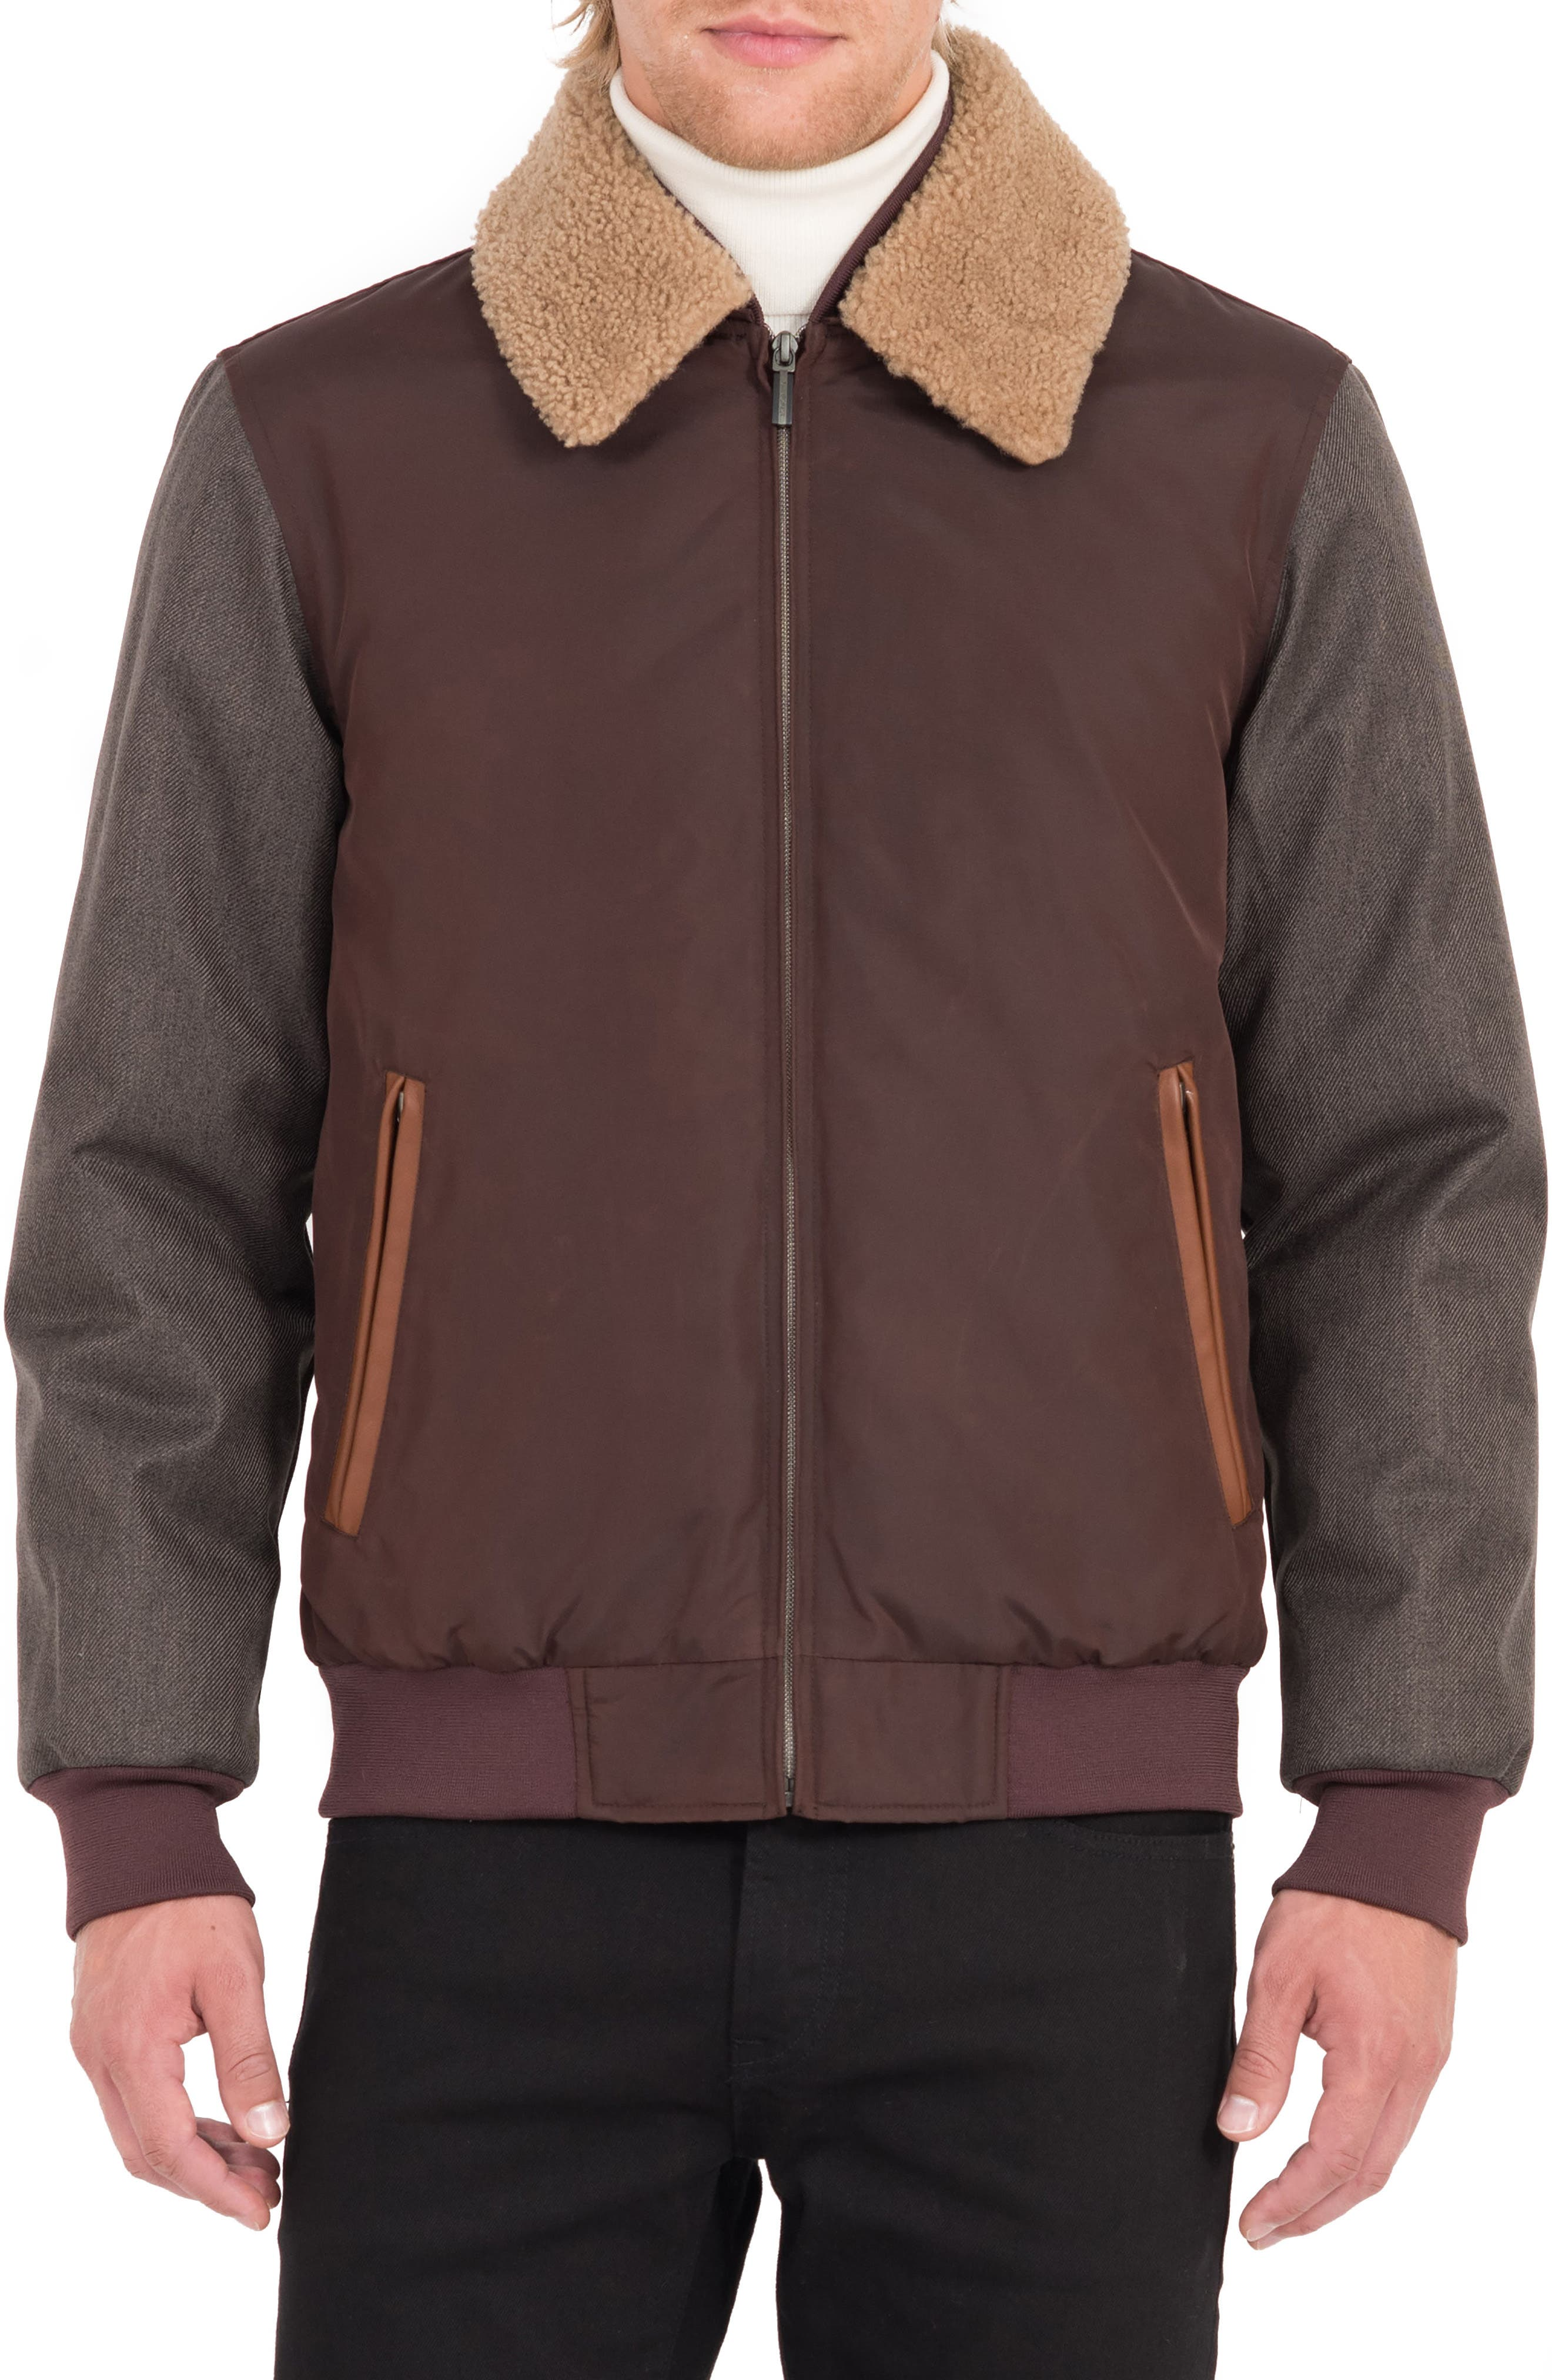 Waxed Nylon Jacket with Faux Shearling Collar,                             Alternate thumbnail 2, color,                             930